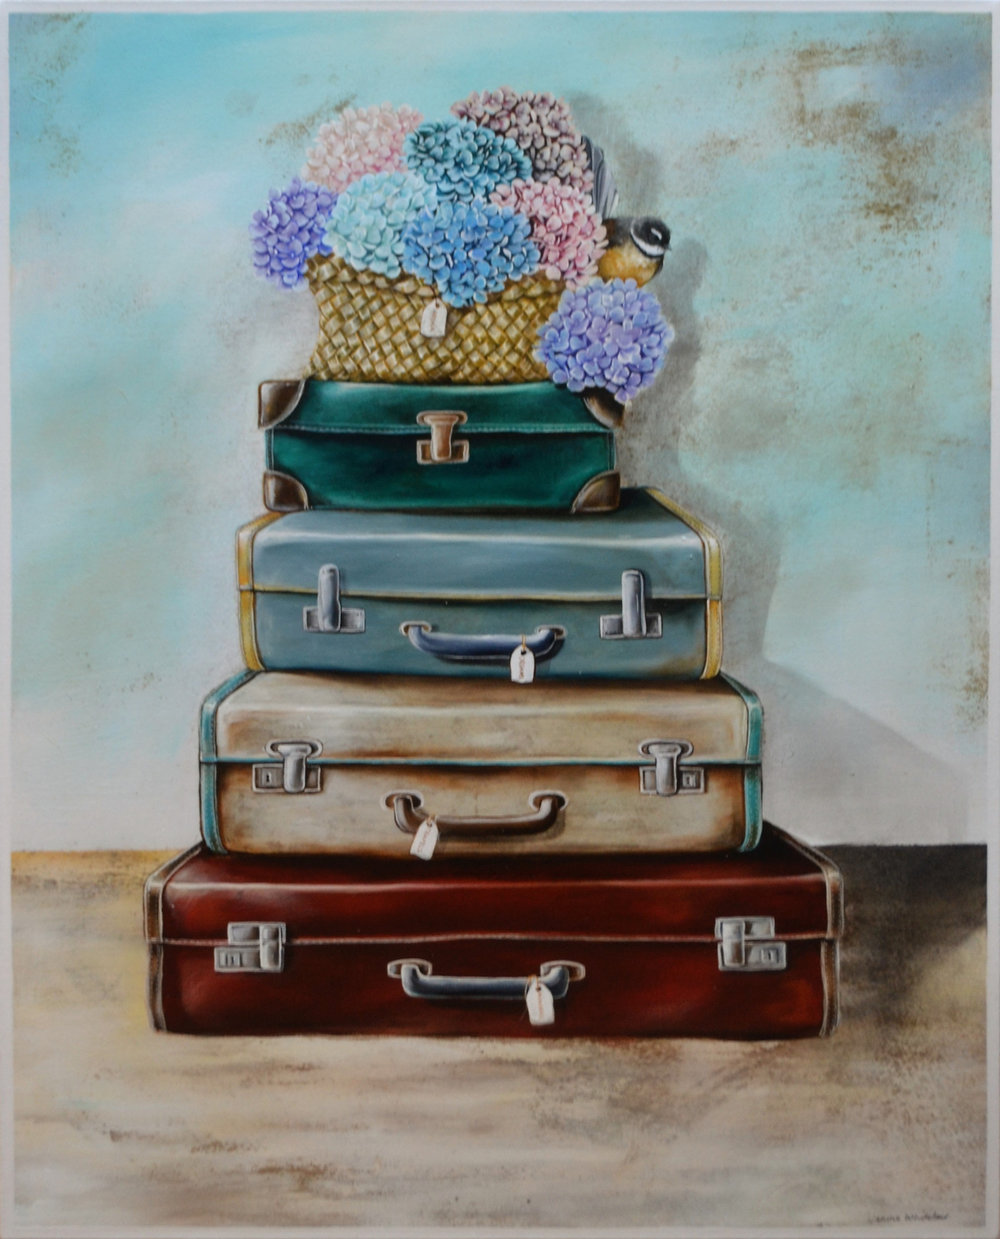 Treasured Memories  Janine Whitelaw, acrylic on canvas, 1000mm x 800mm  $2,000.00